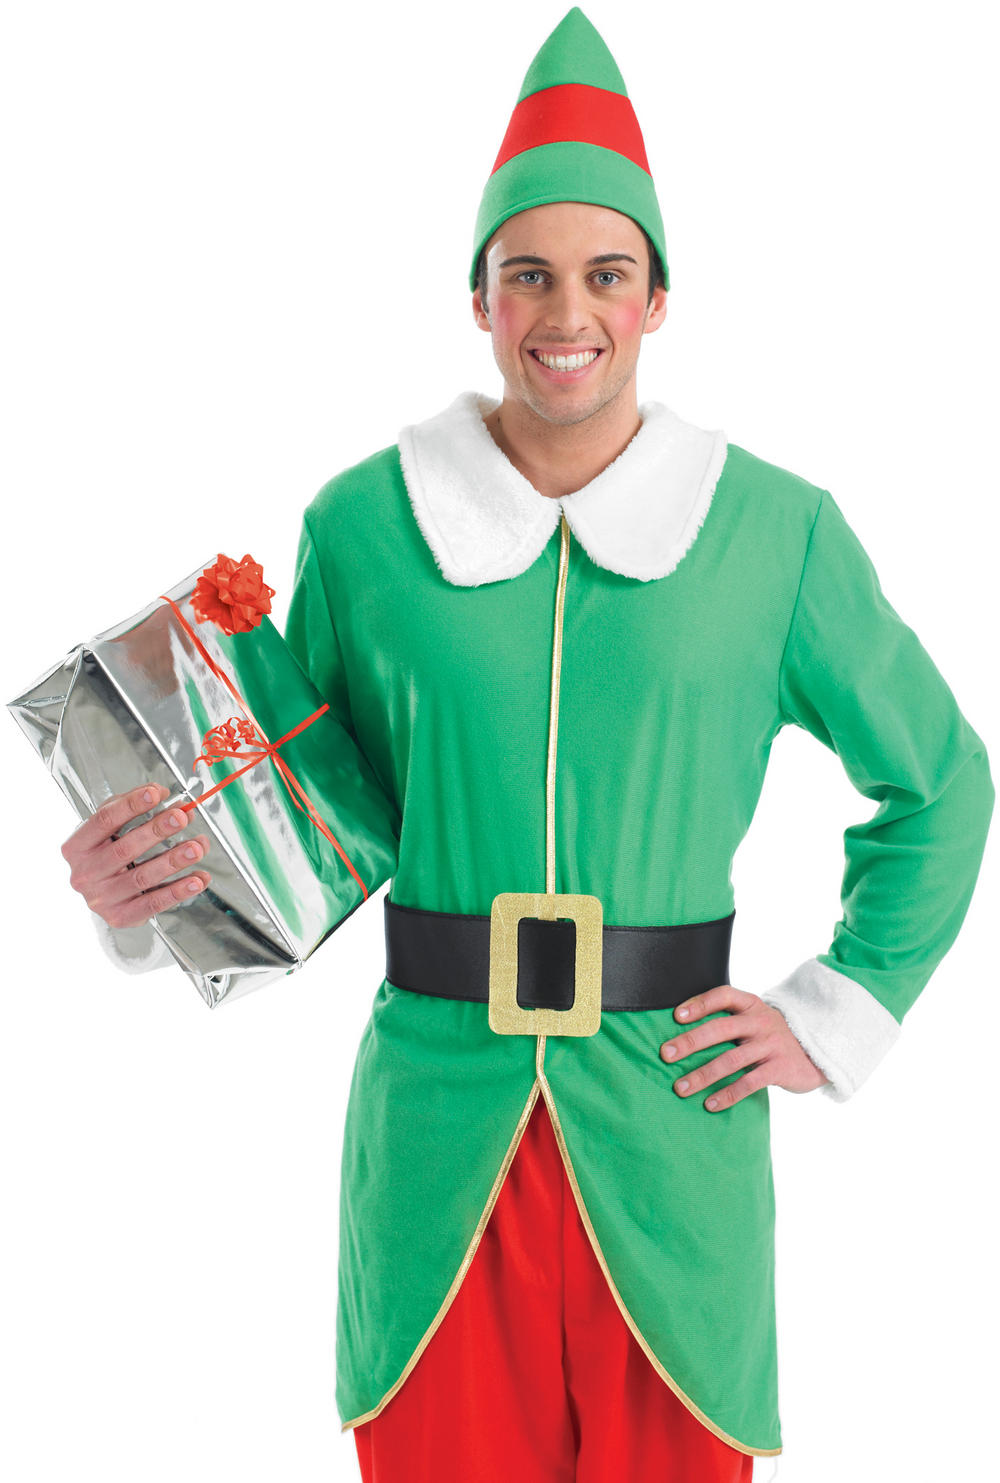 Most Festive Christmas Outfit